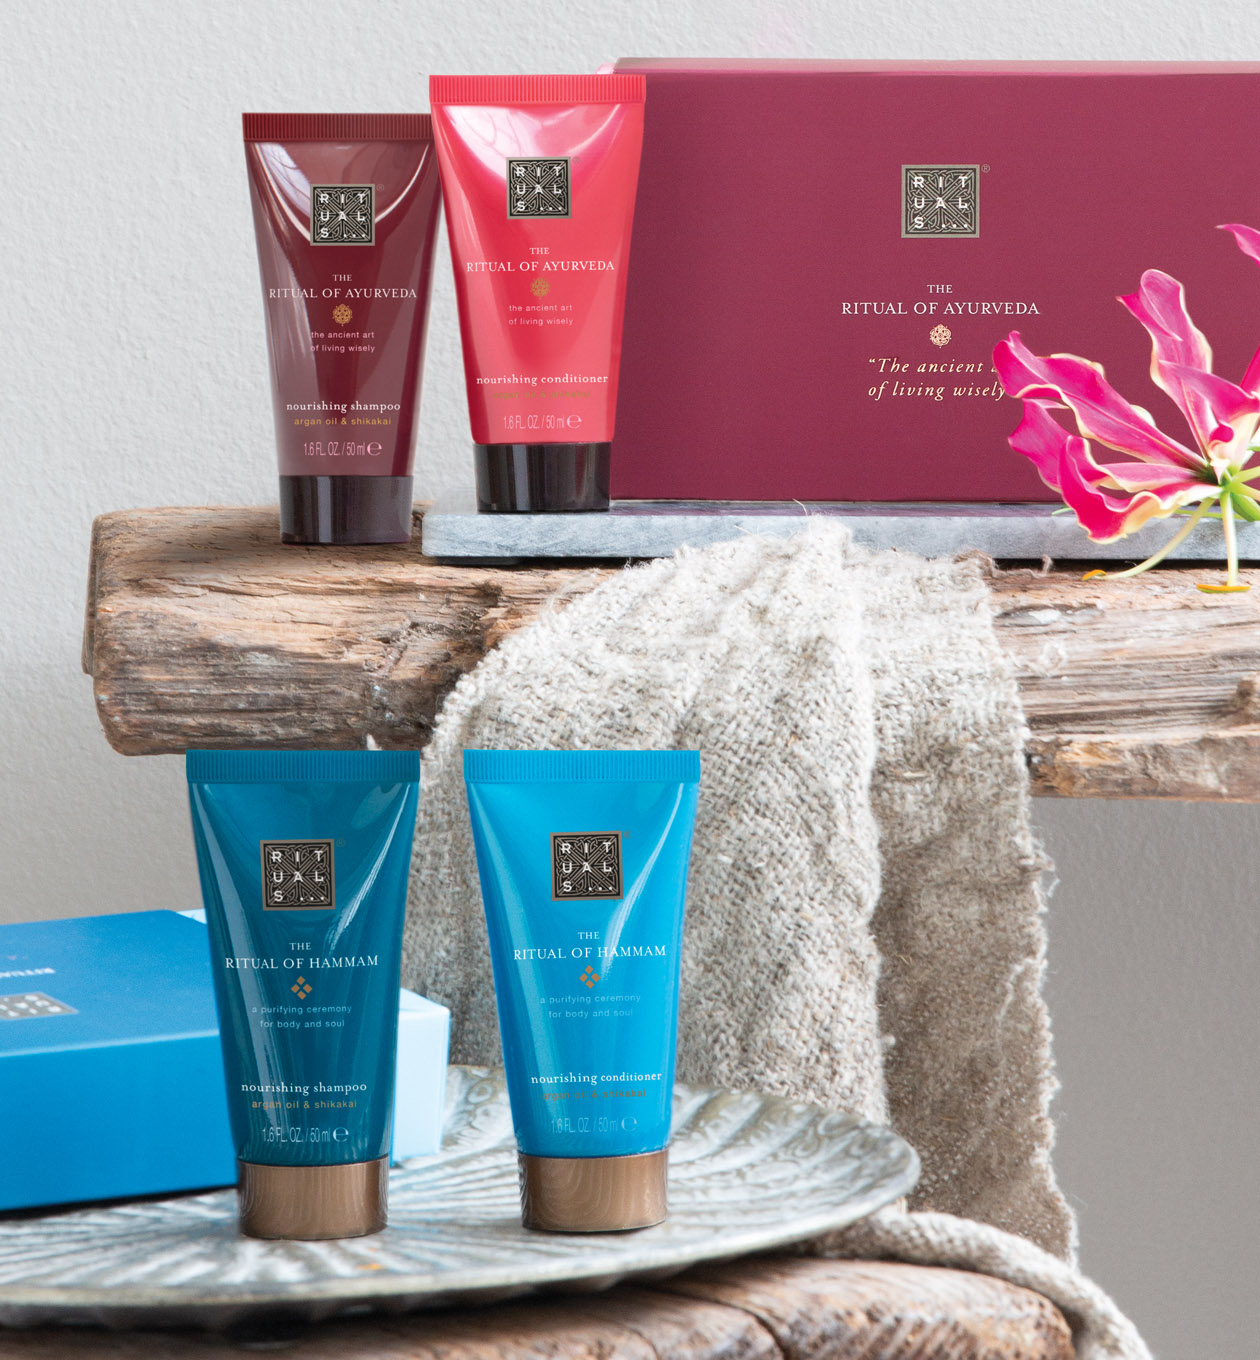 Shop to receive the sampoo & conditioner set for free